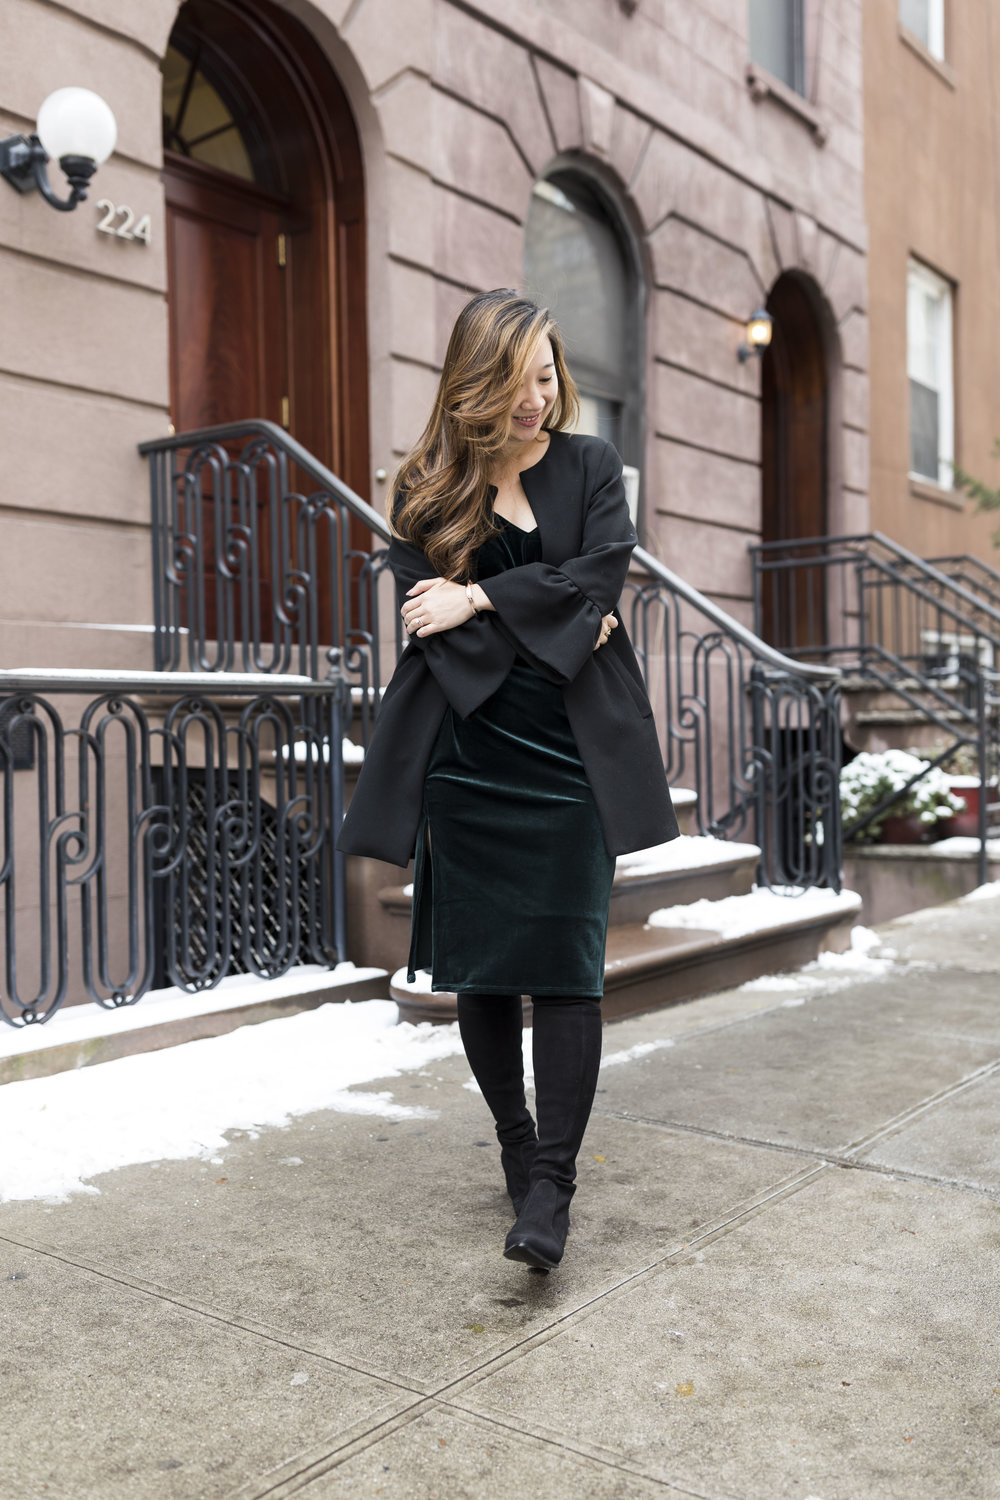 Winter Style No. 2 - Velvet Cami Dress with Over-the-knee Boots